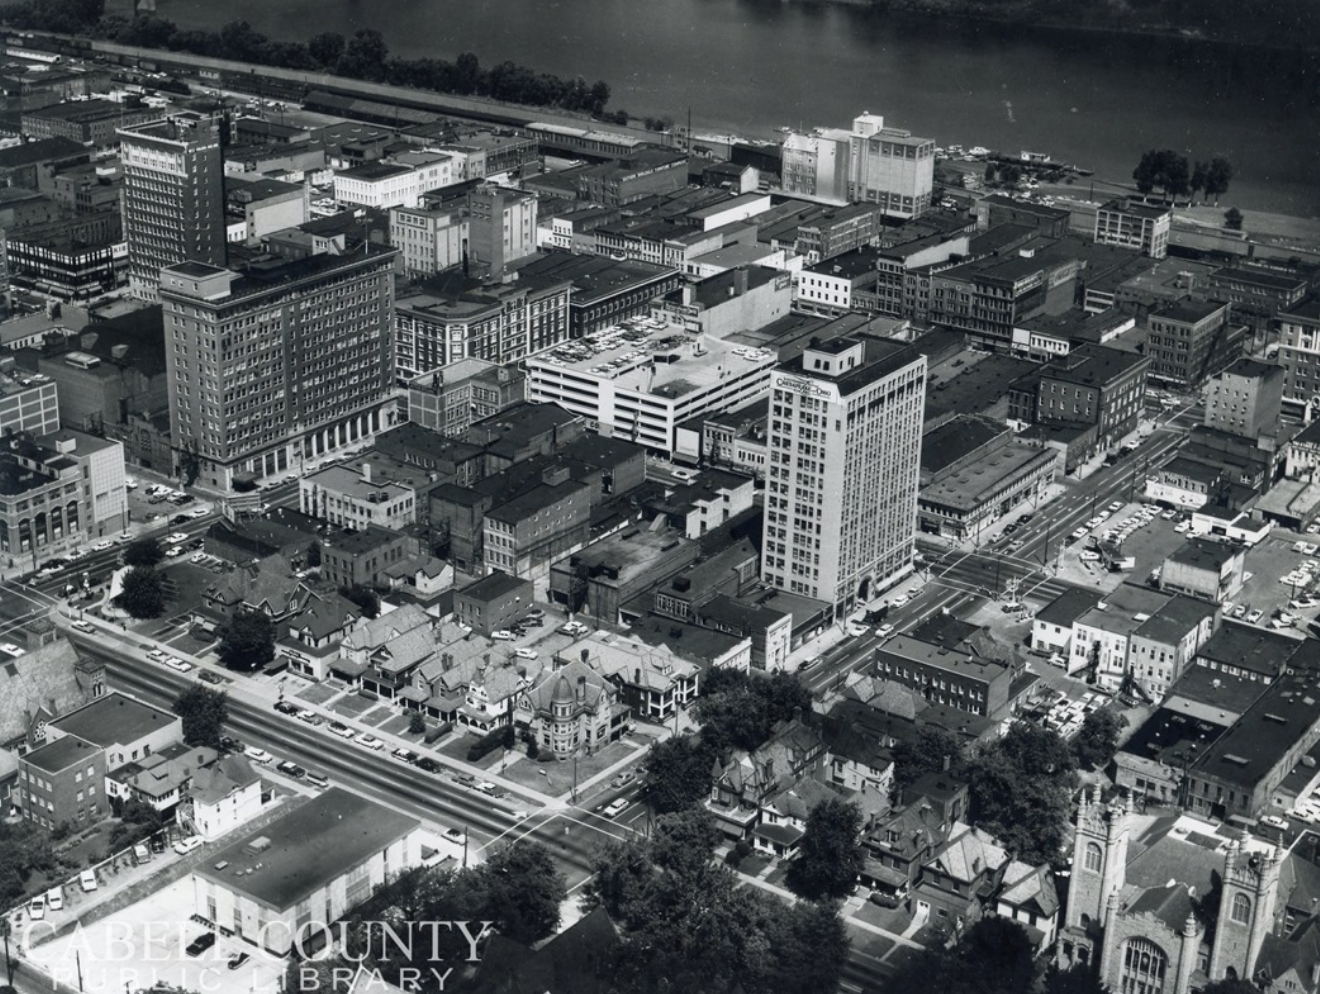 Aerial view of downtown Huntington, with the mill visible at the top